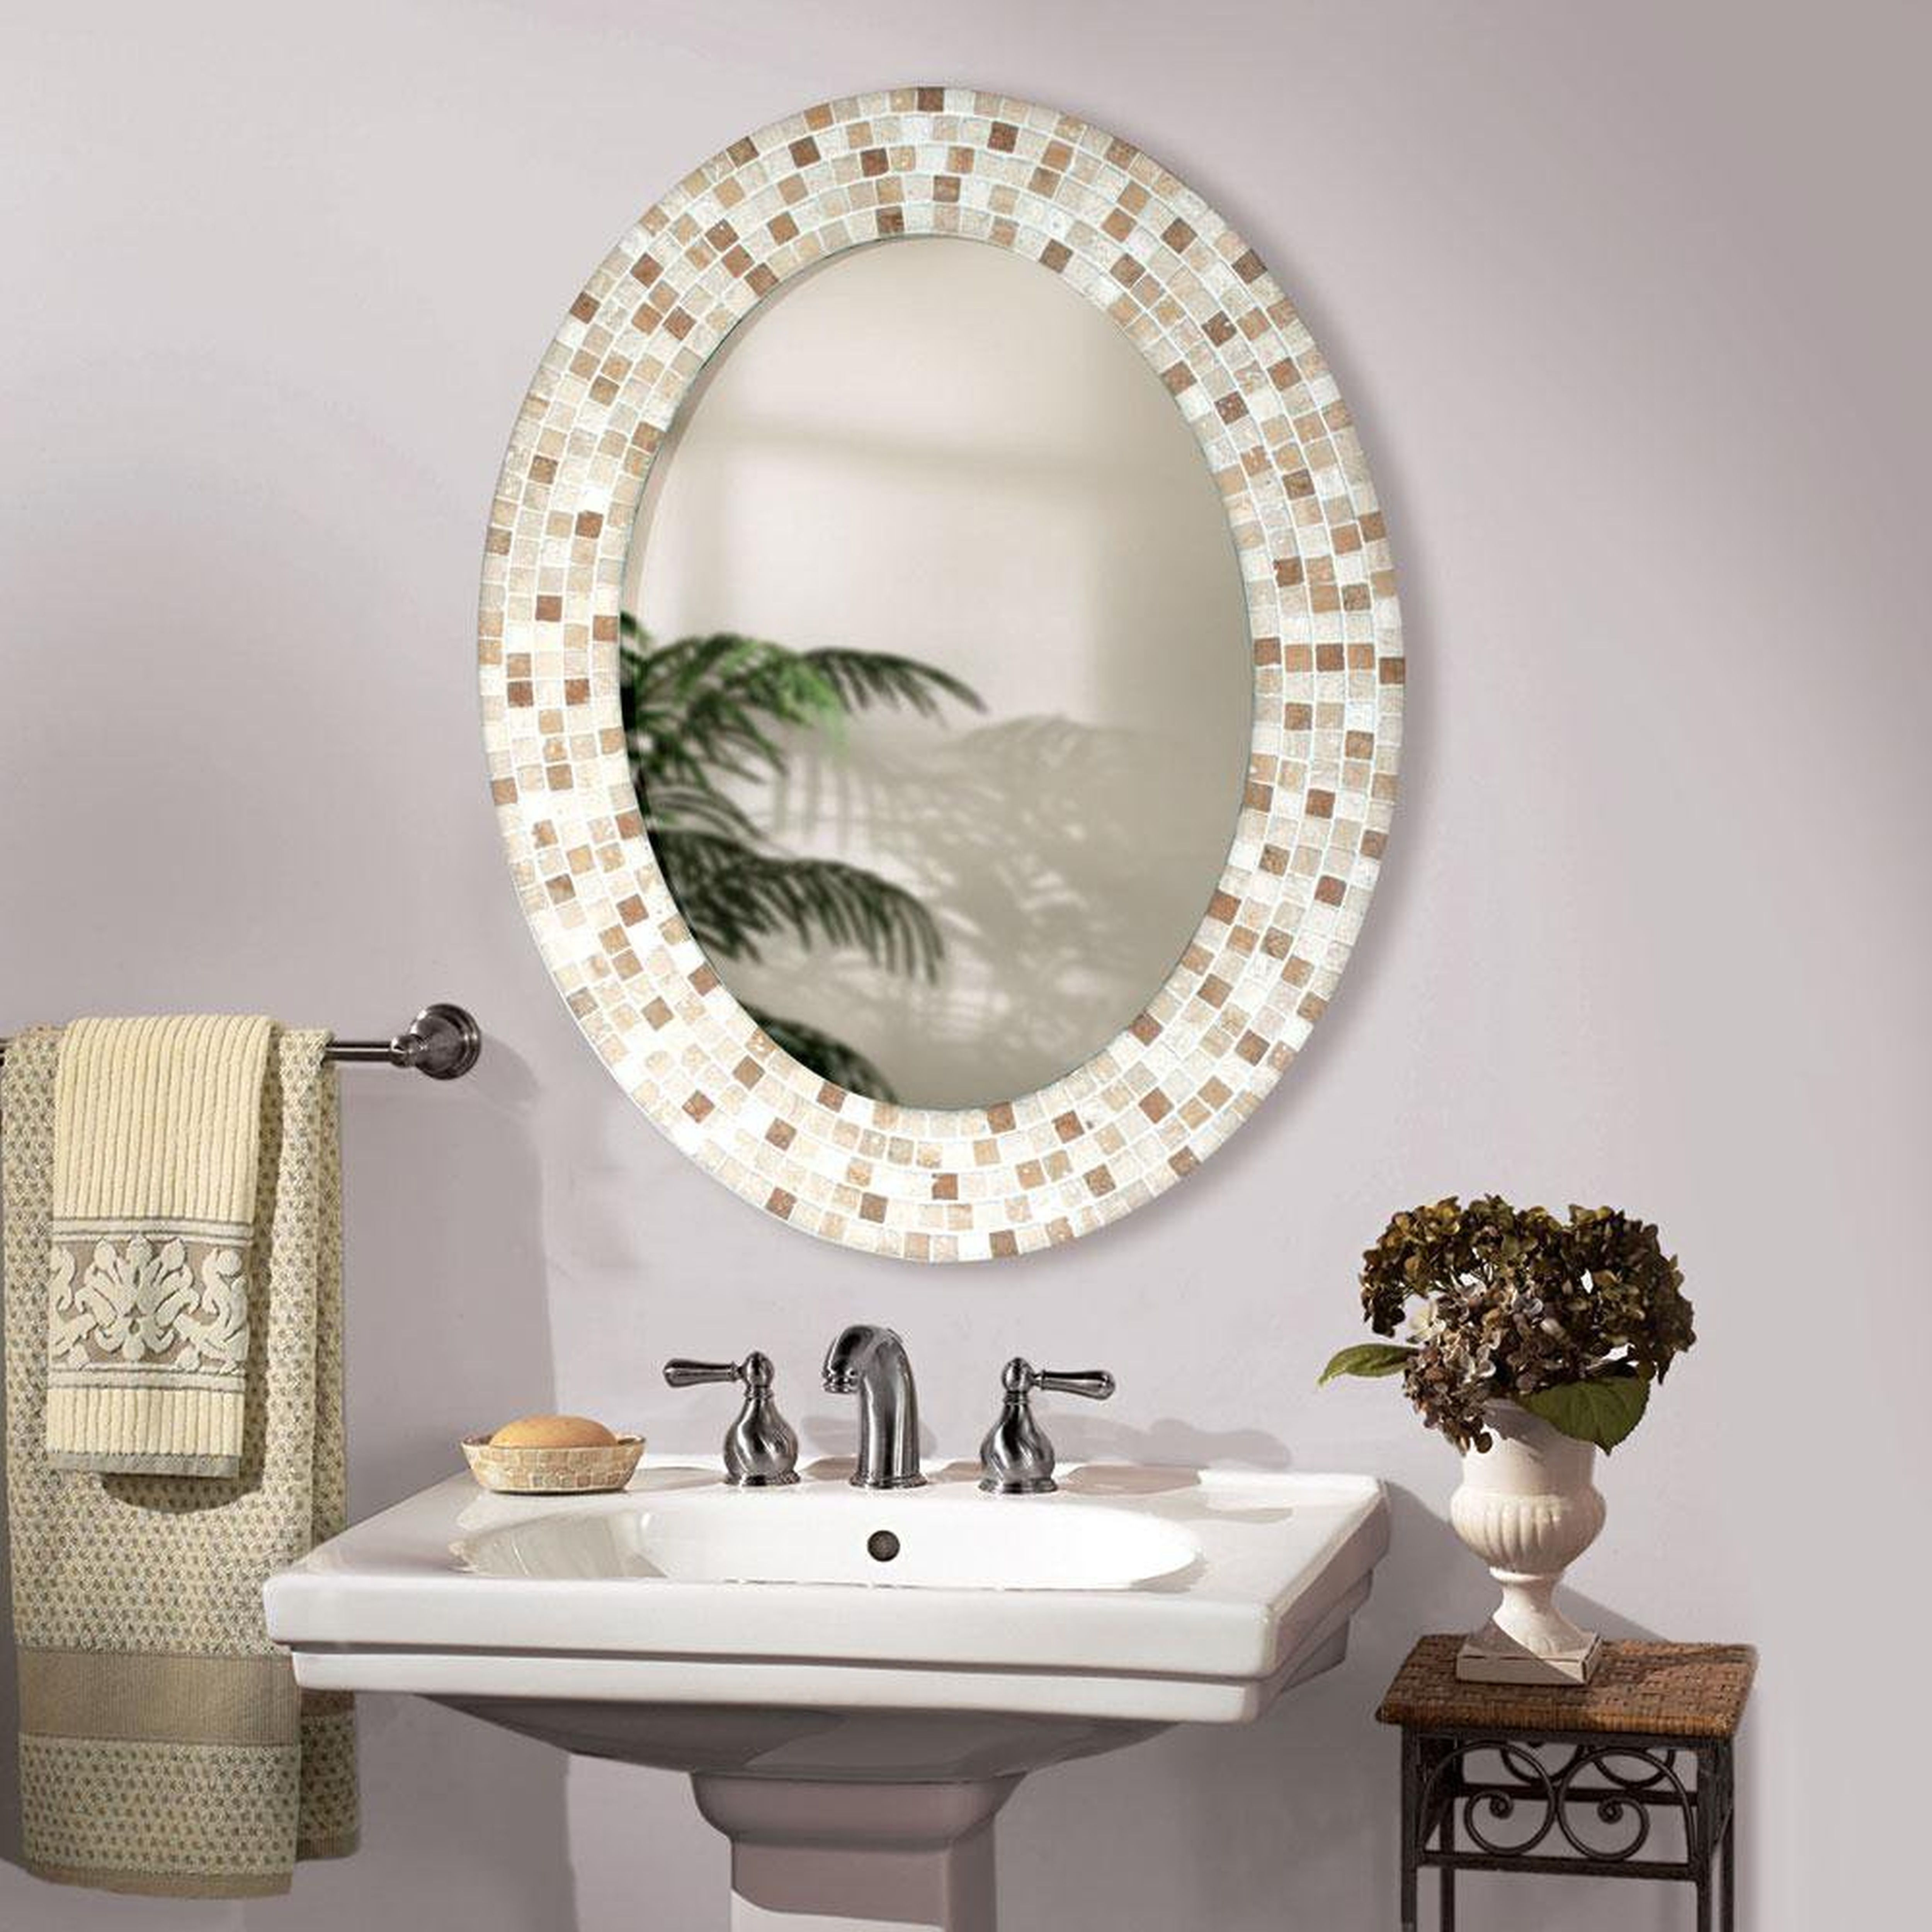 17 Incredibly Cool Bathrooms Mirror Ideas for Every Style 2018 ...